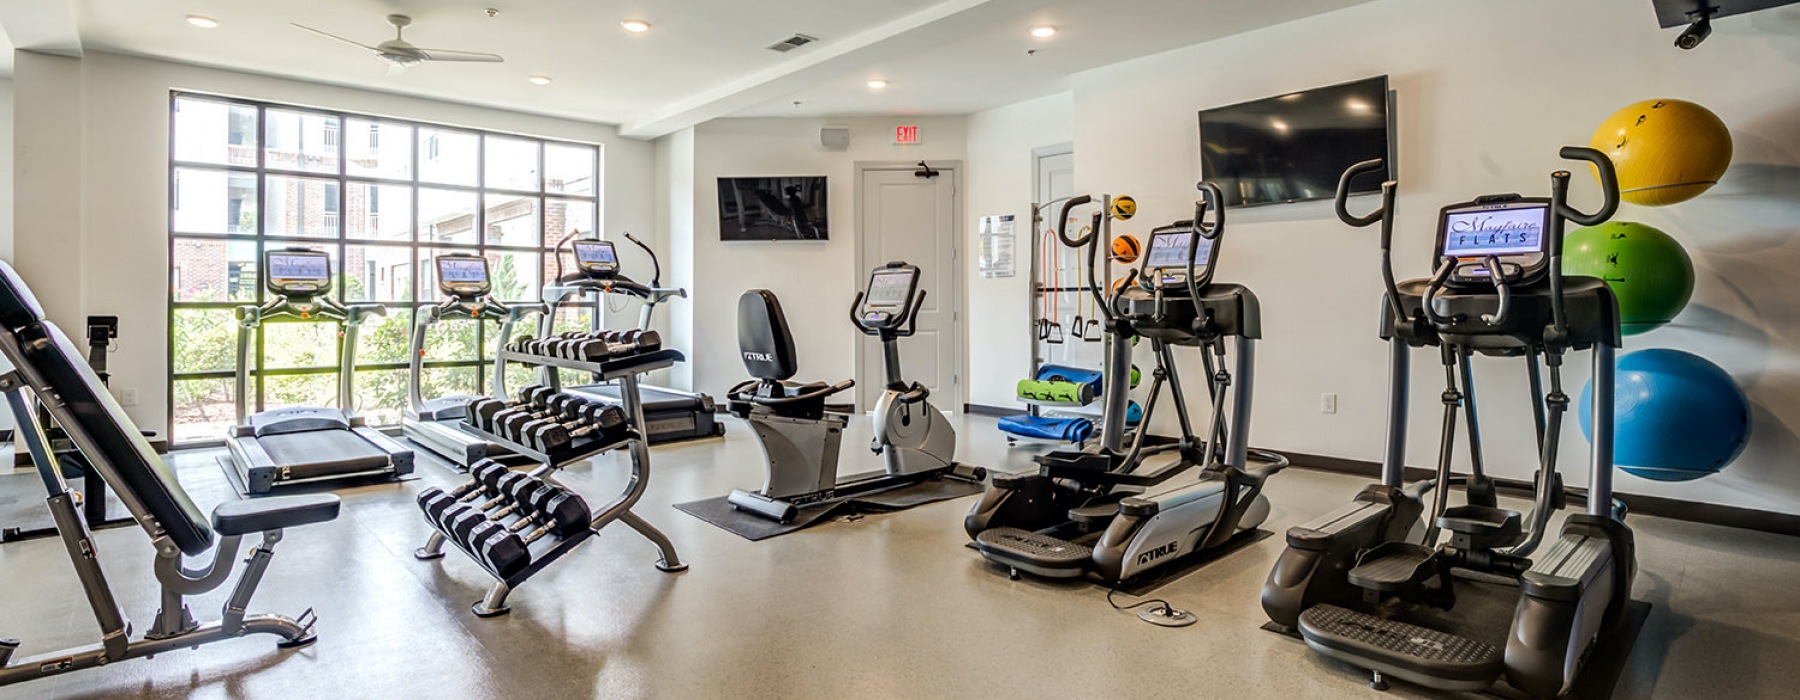 Open fitness center with warm, recessed lighting and a variety of equipment